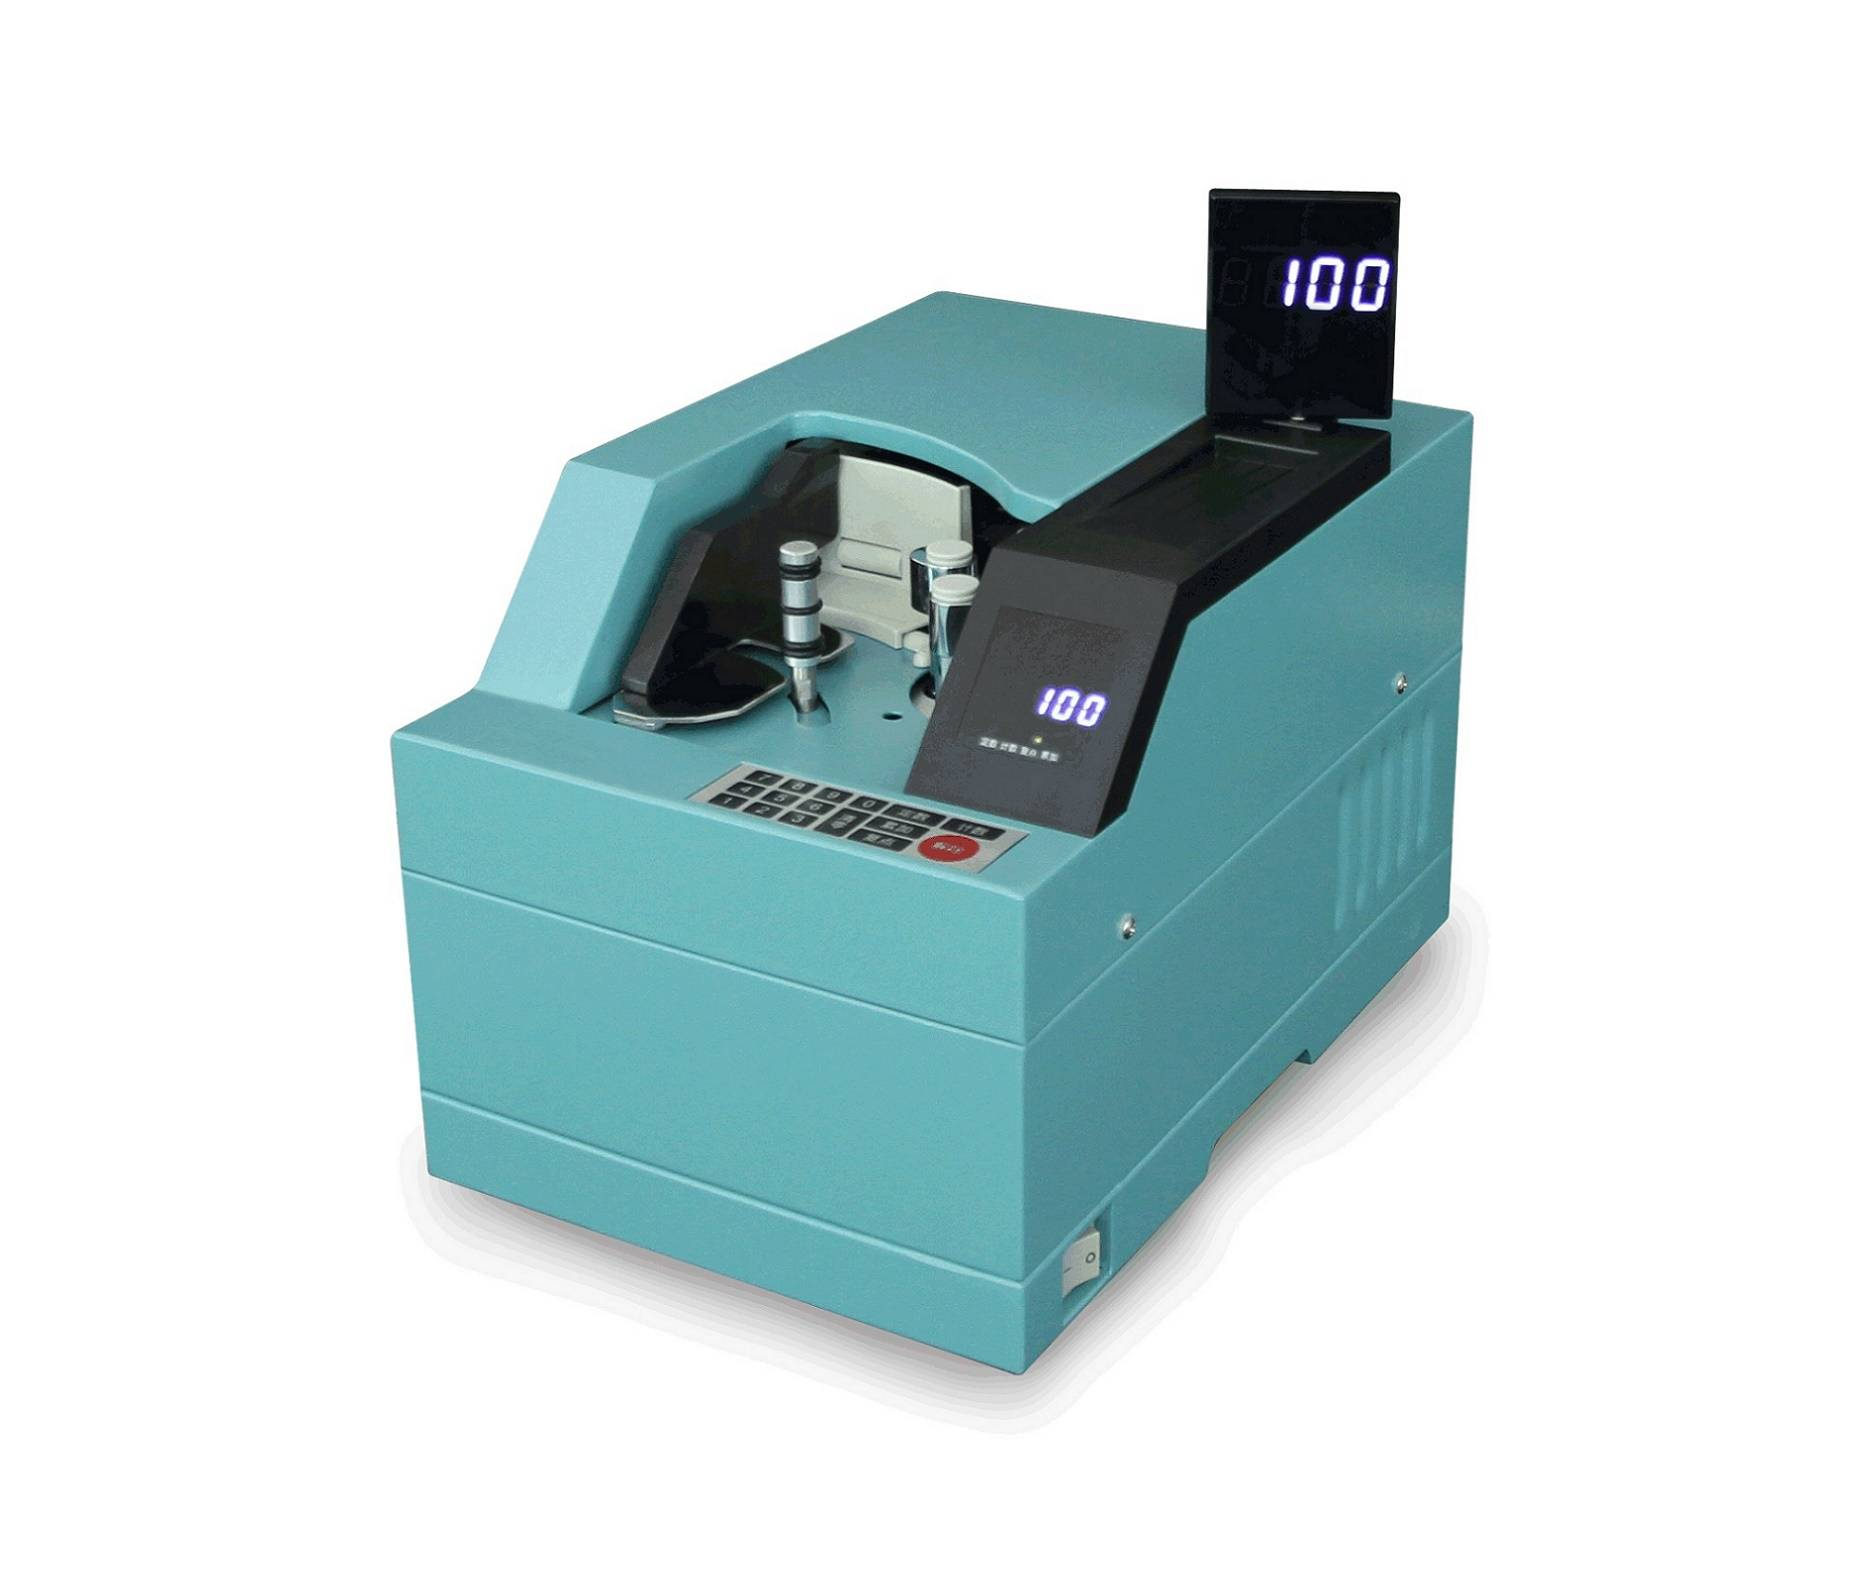 FDJ-100 Vacuum Bill Counter With Newly-Desiged Dual-Displays for Bundled Money and Loose Money